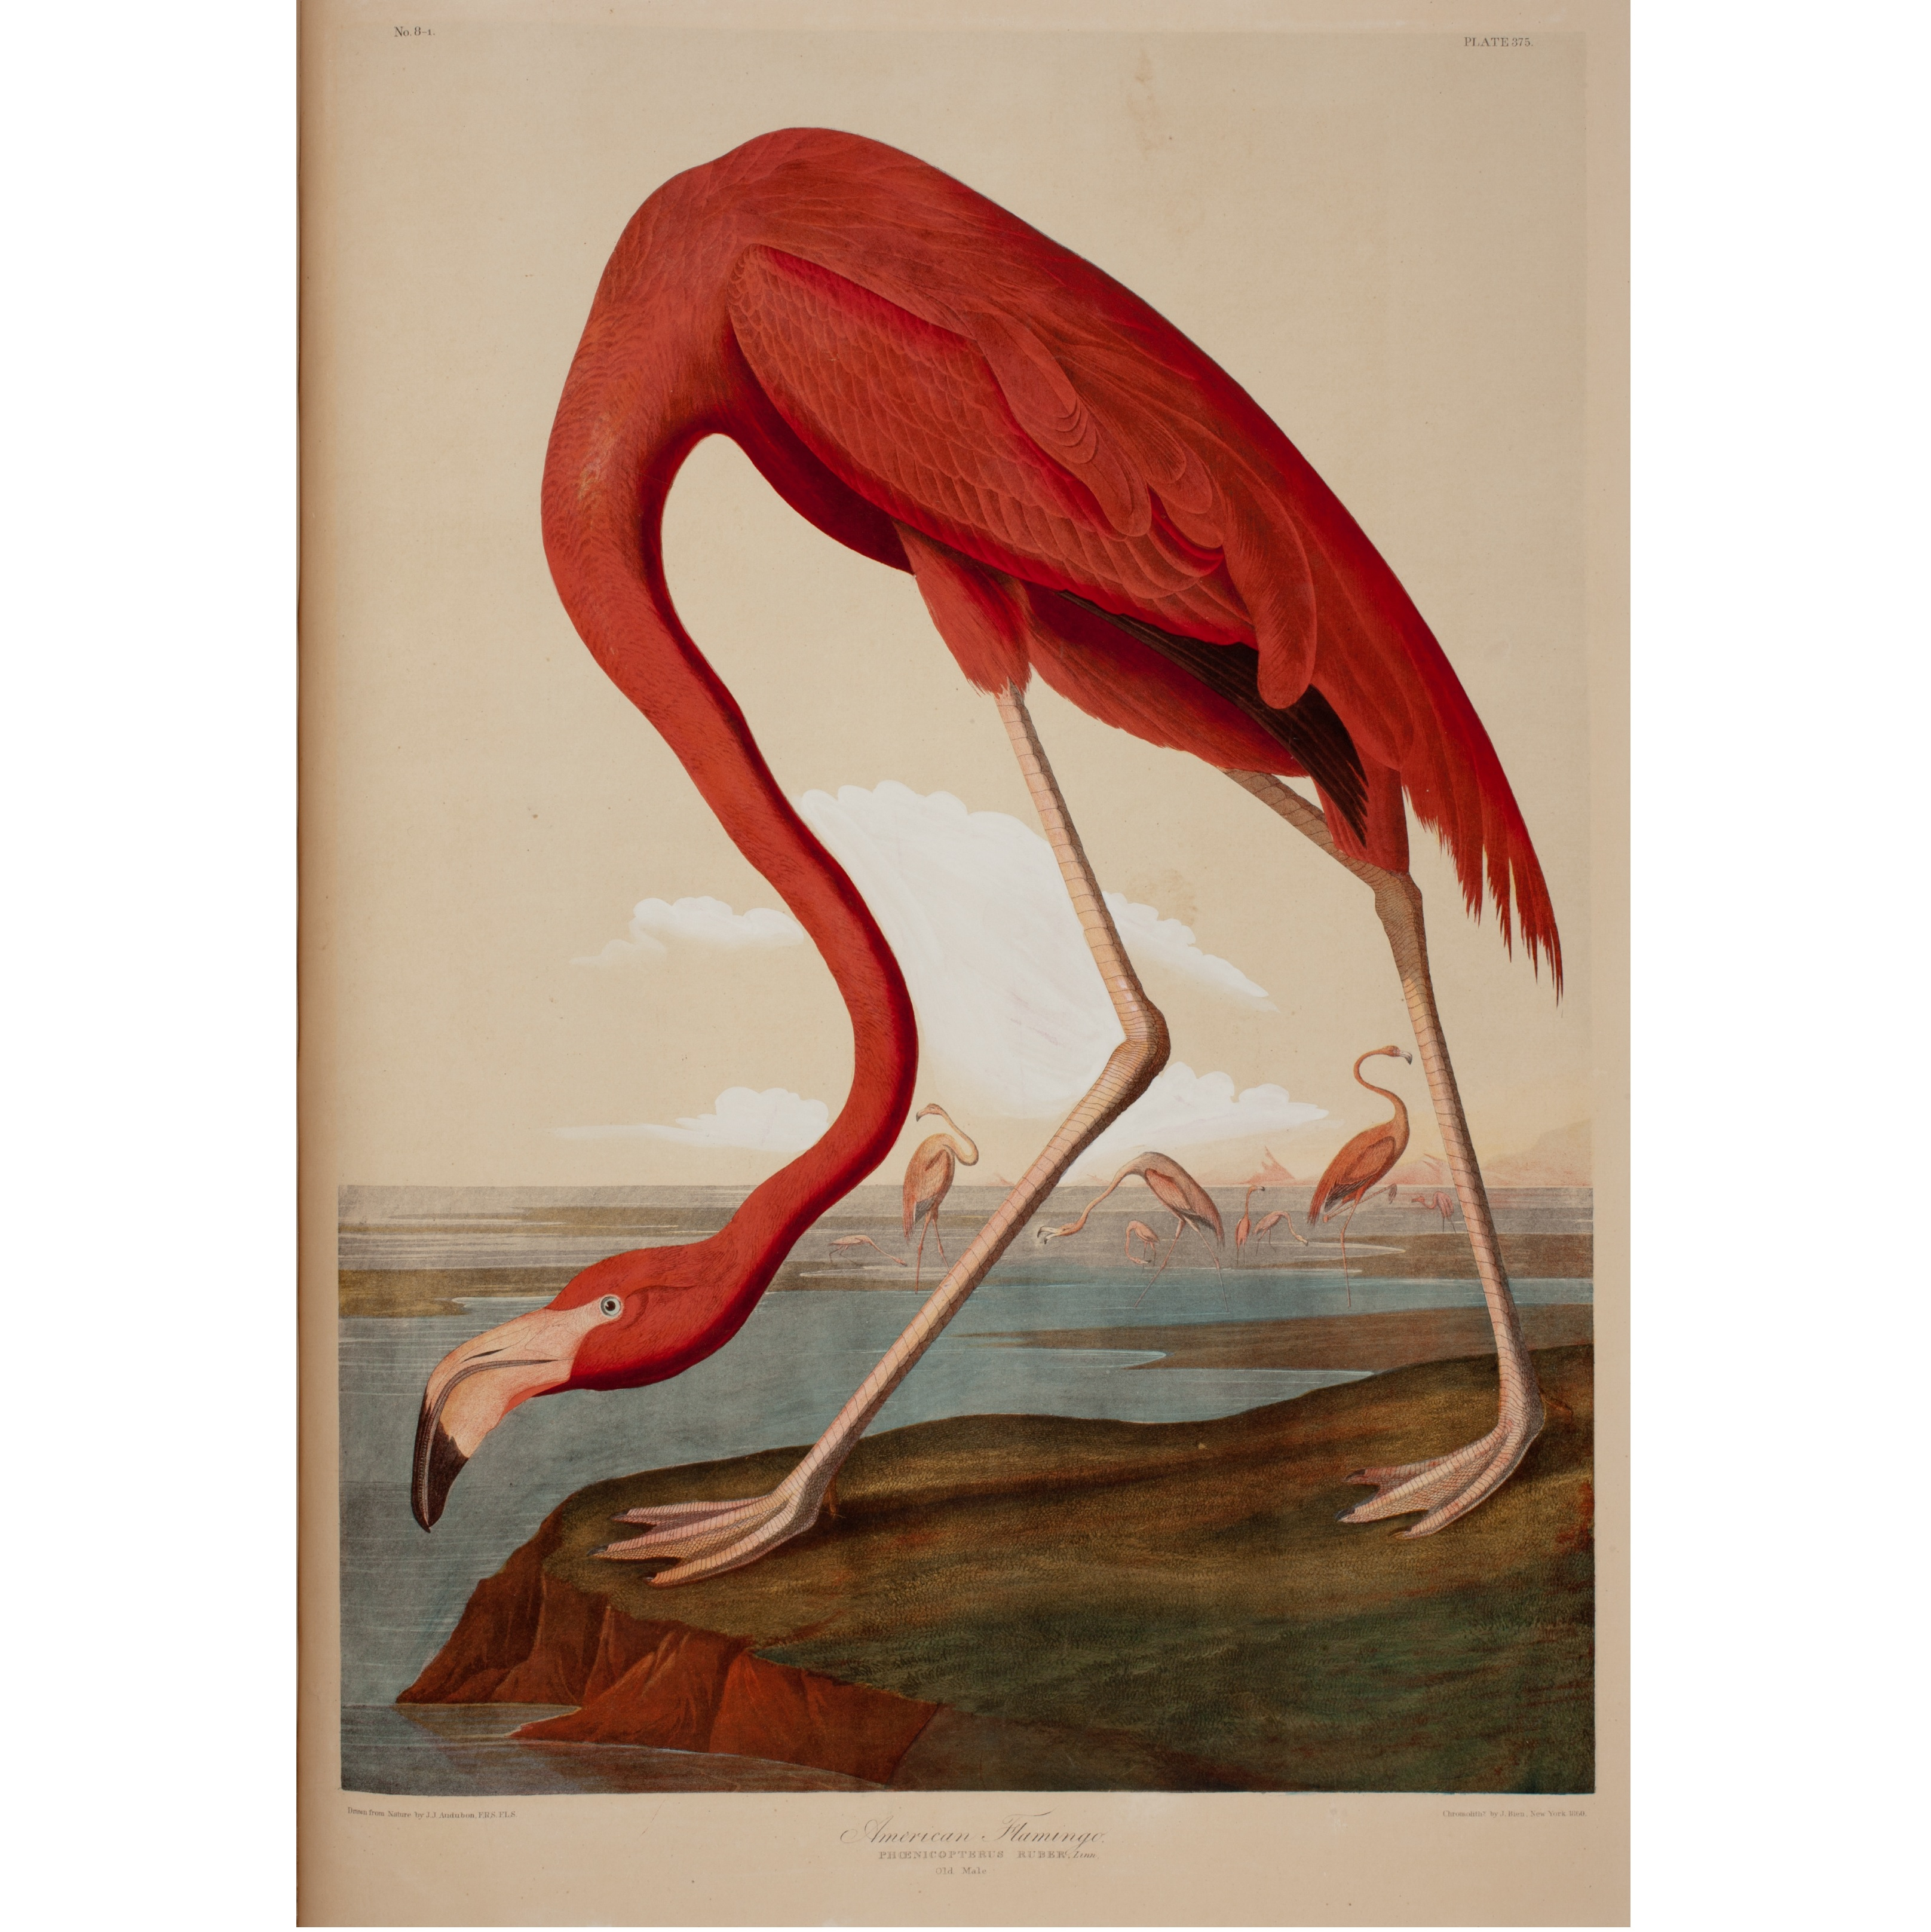 The Oversized Bien Volume Often Called A Double Elephant Folio Was Collaboration Between John James Audubon S Son Woodhouse